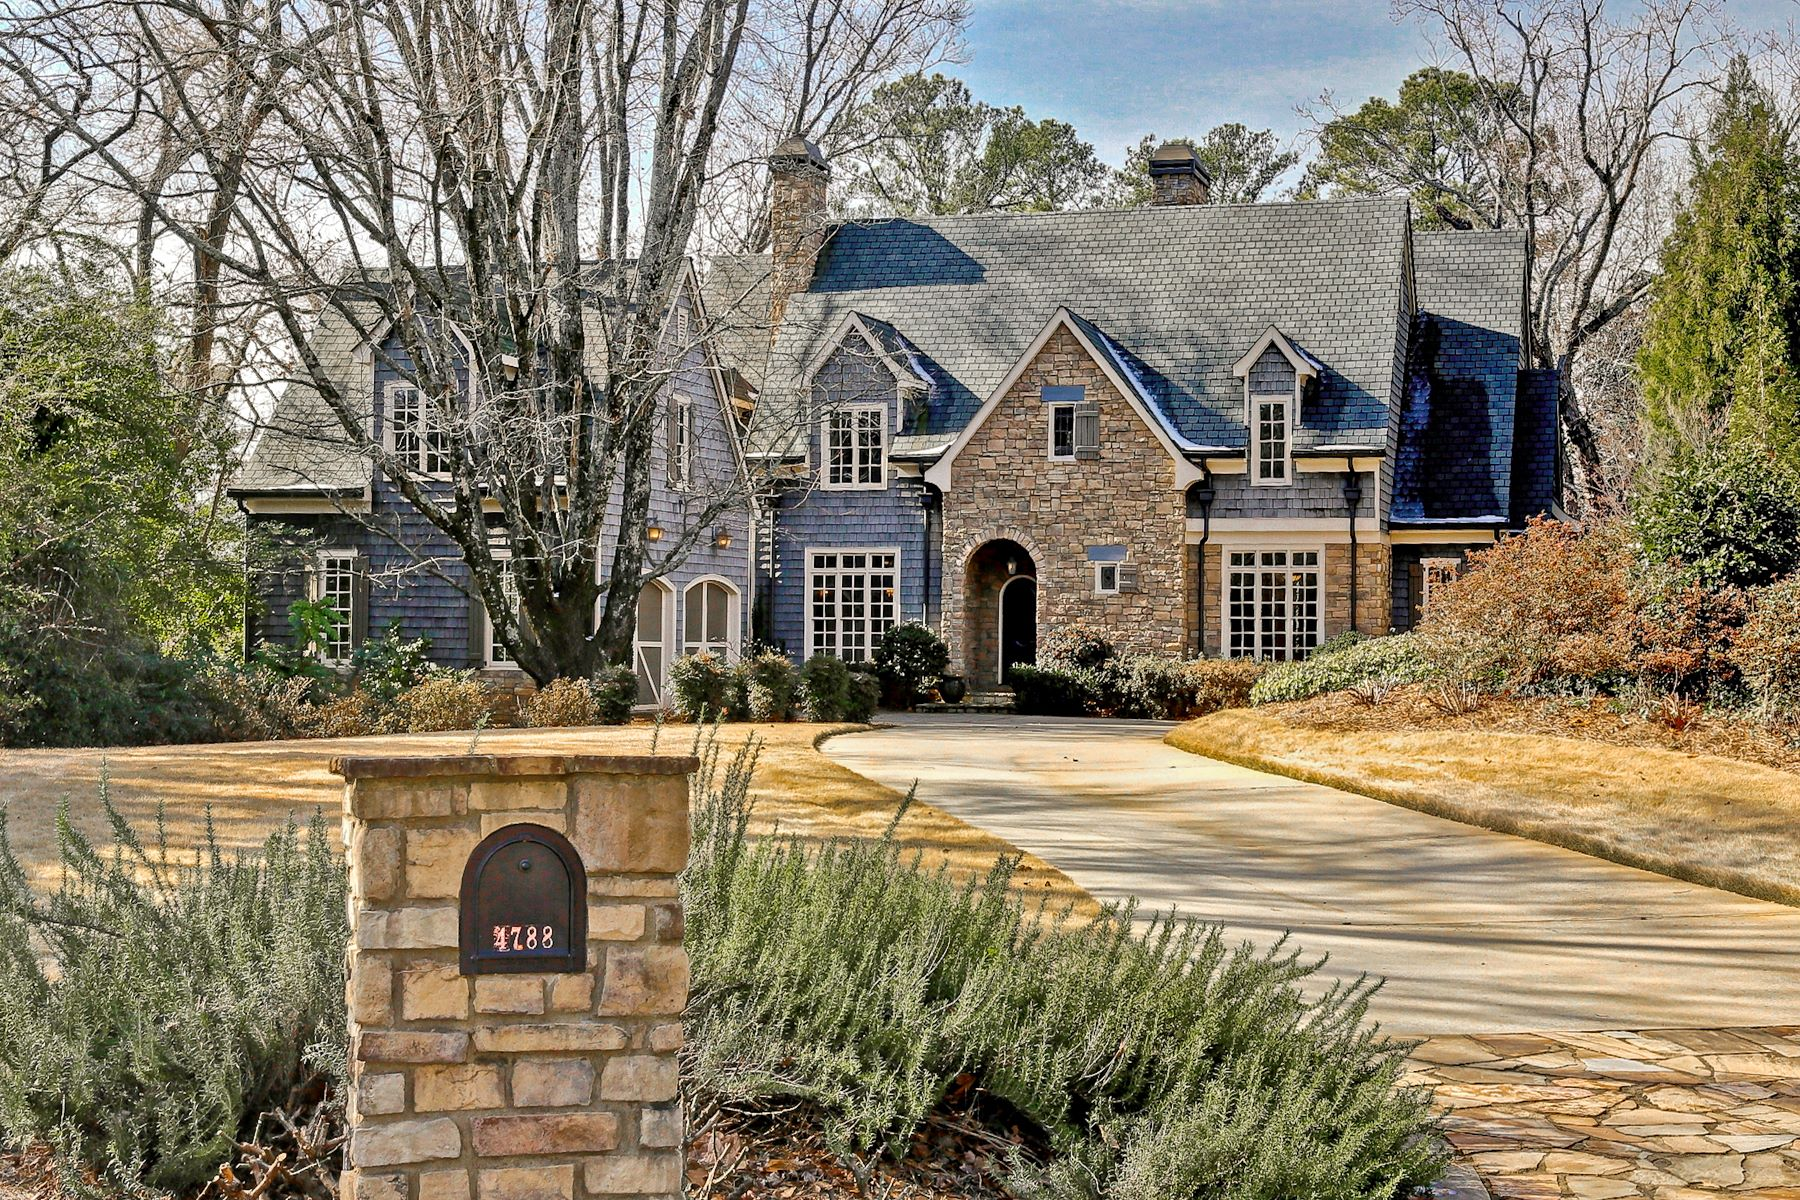 Casa Unifamiliar por un Venta en Absolutely Stunning Custom Built Home In Chastain Park Area 4788 Dudley Lane Atlanta, Georgia, 30327 Estados Unidos